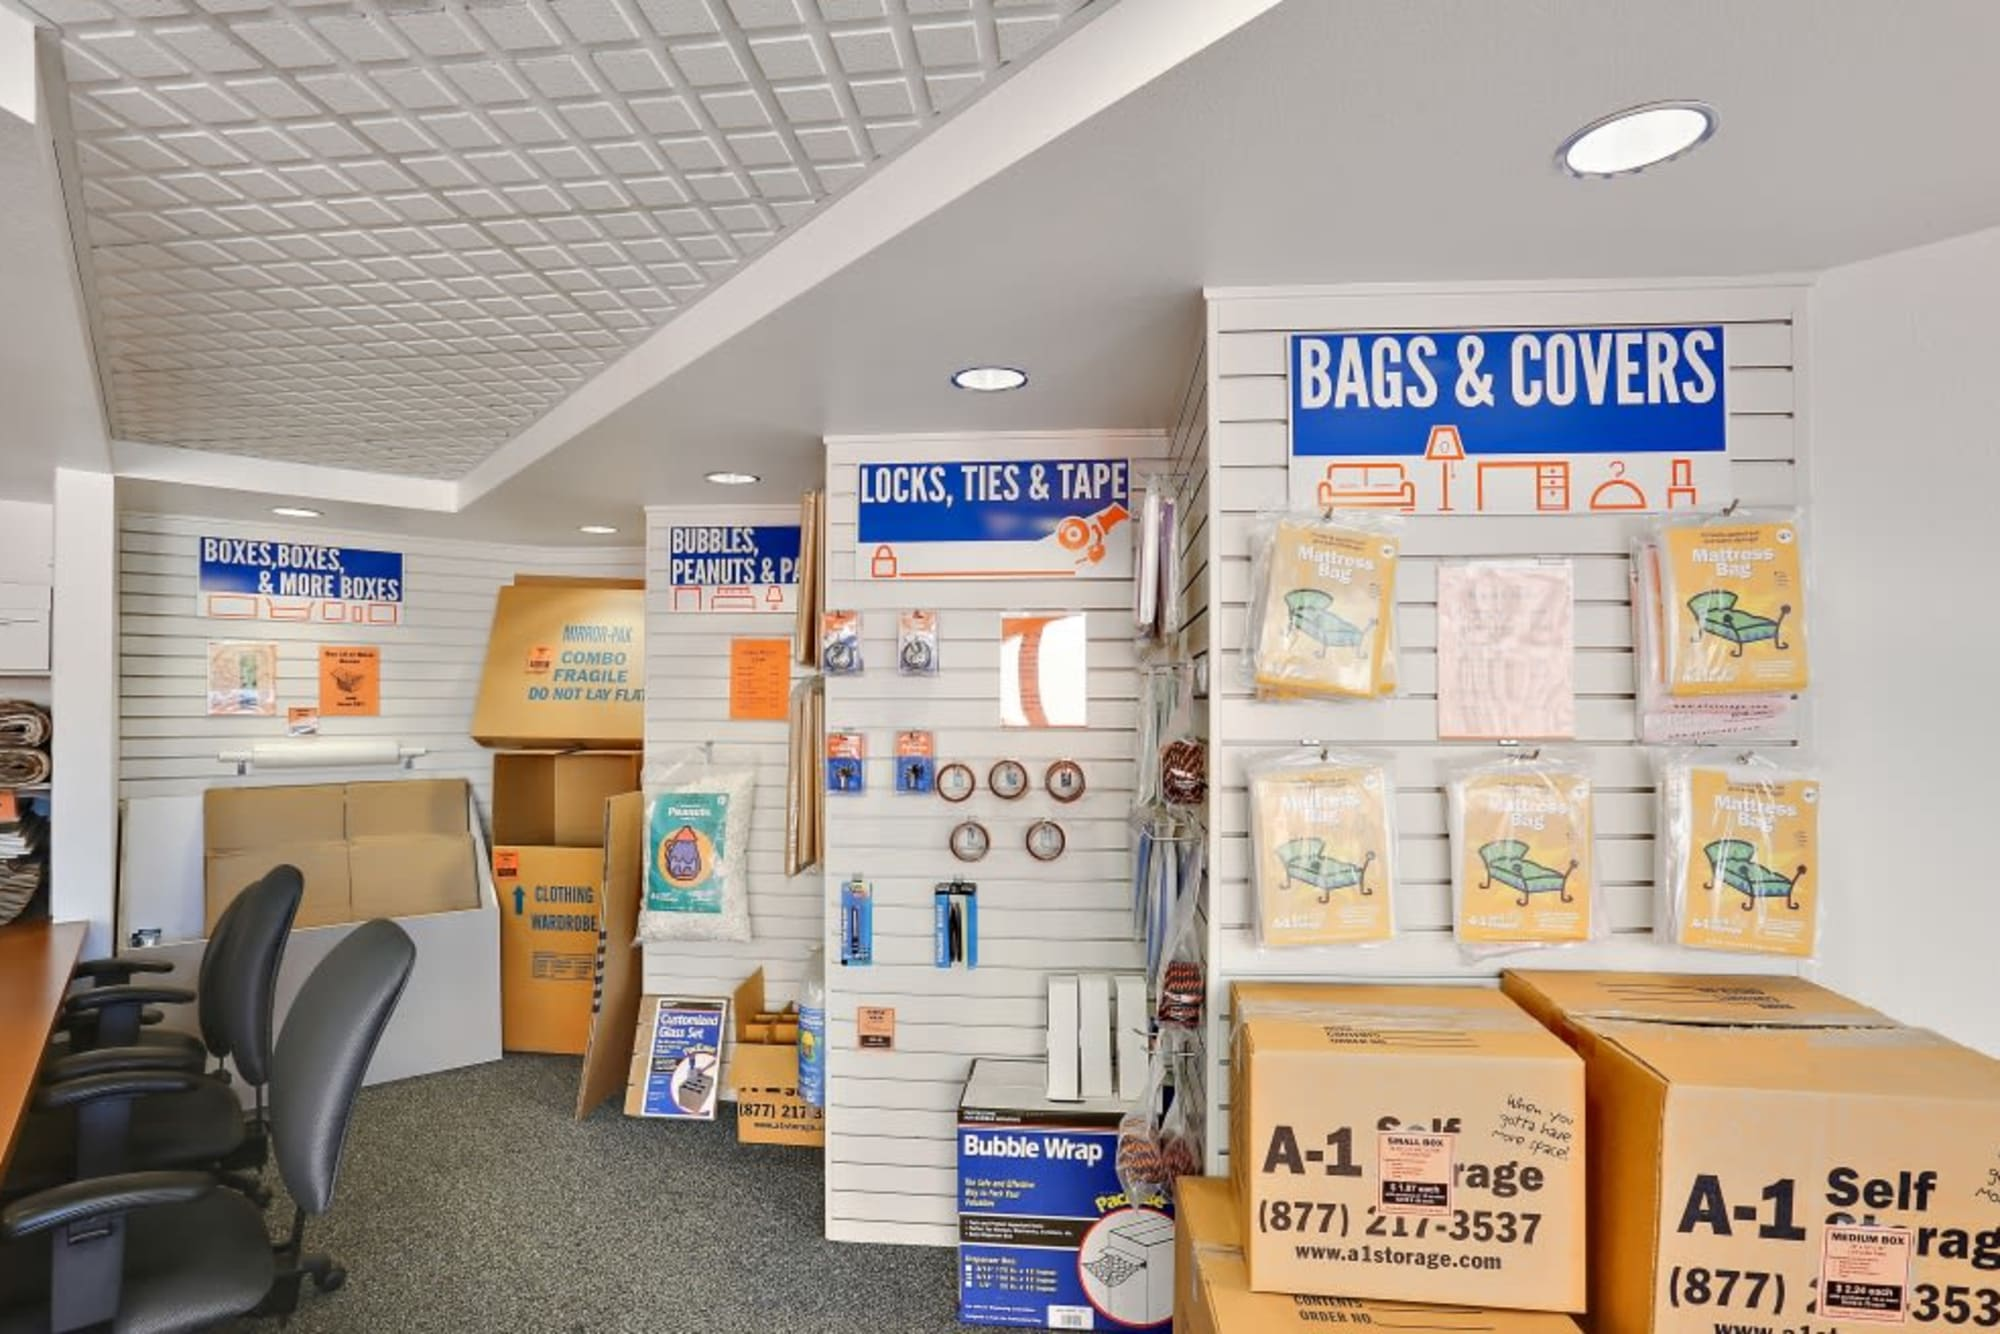 Packing and moving supplies available from A-1 Self Storage in Oceanside, California